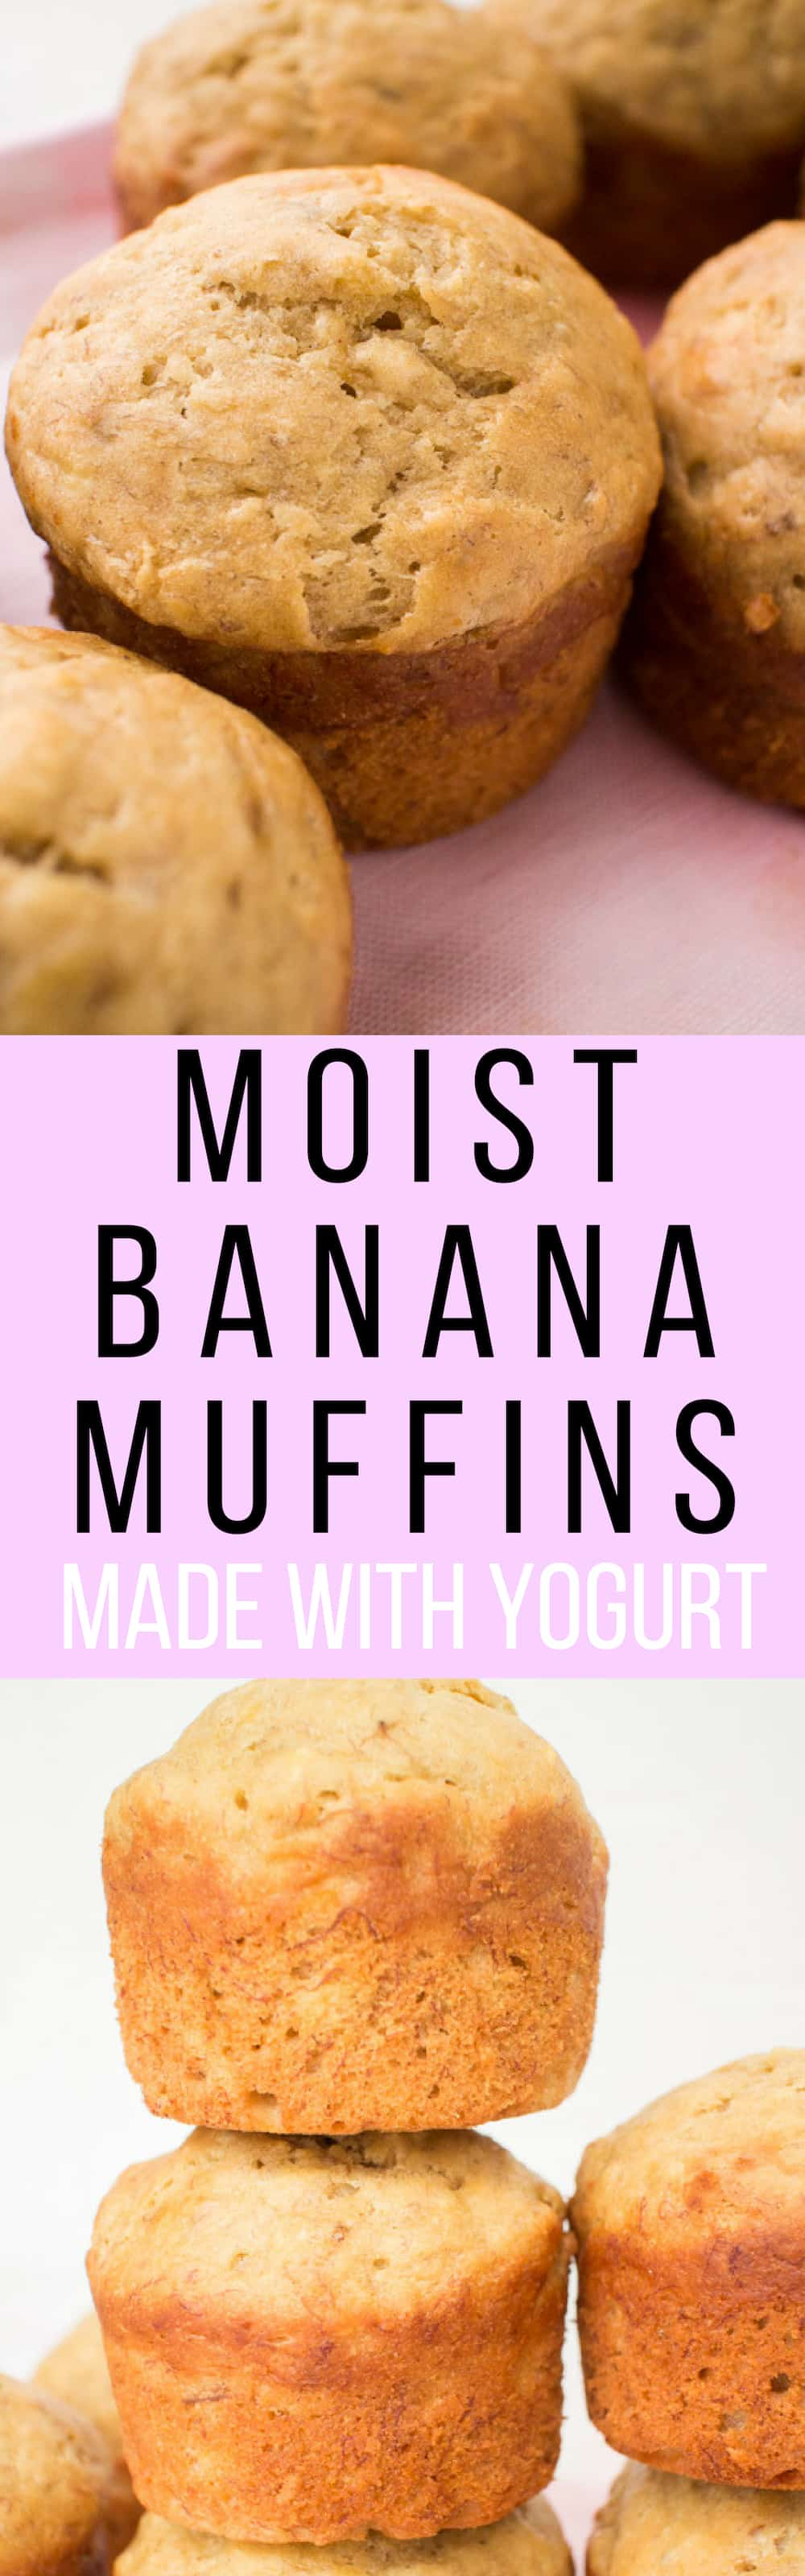 EASY Moist Banana Muffins Recipe made with yogurt! These healthy muffins only need 2 tablespoons of butter and 1/4 cup brown sugar!   My entire family thinks these are the best muffins for breakfast and dessert!